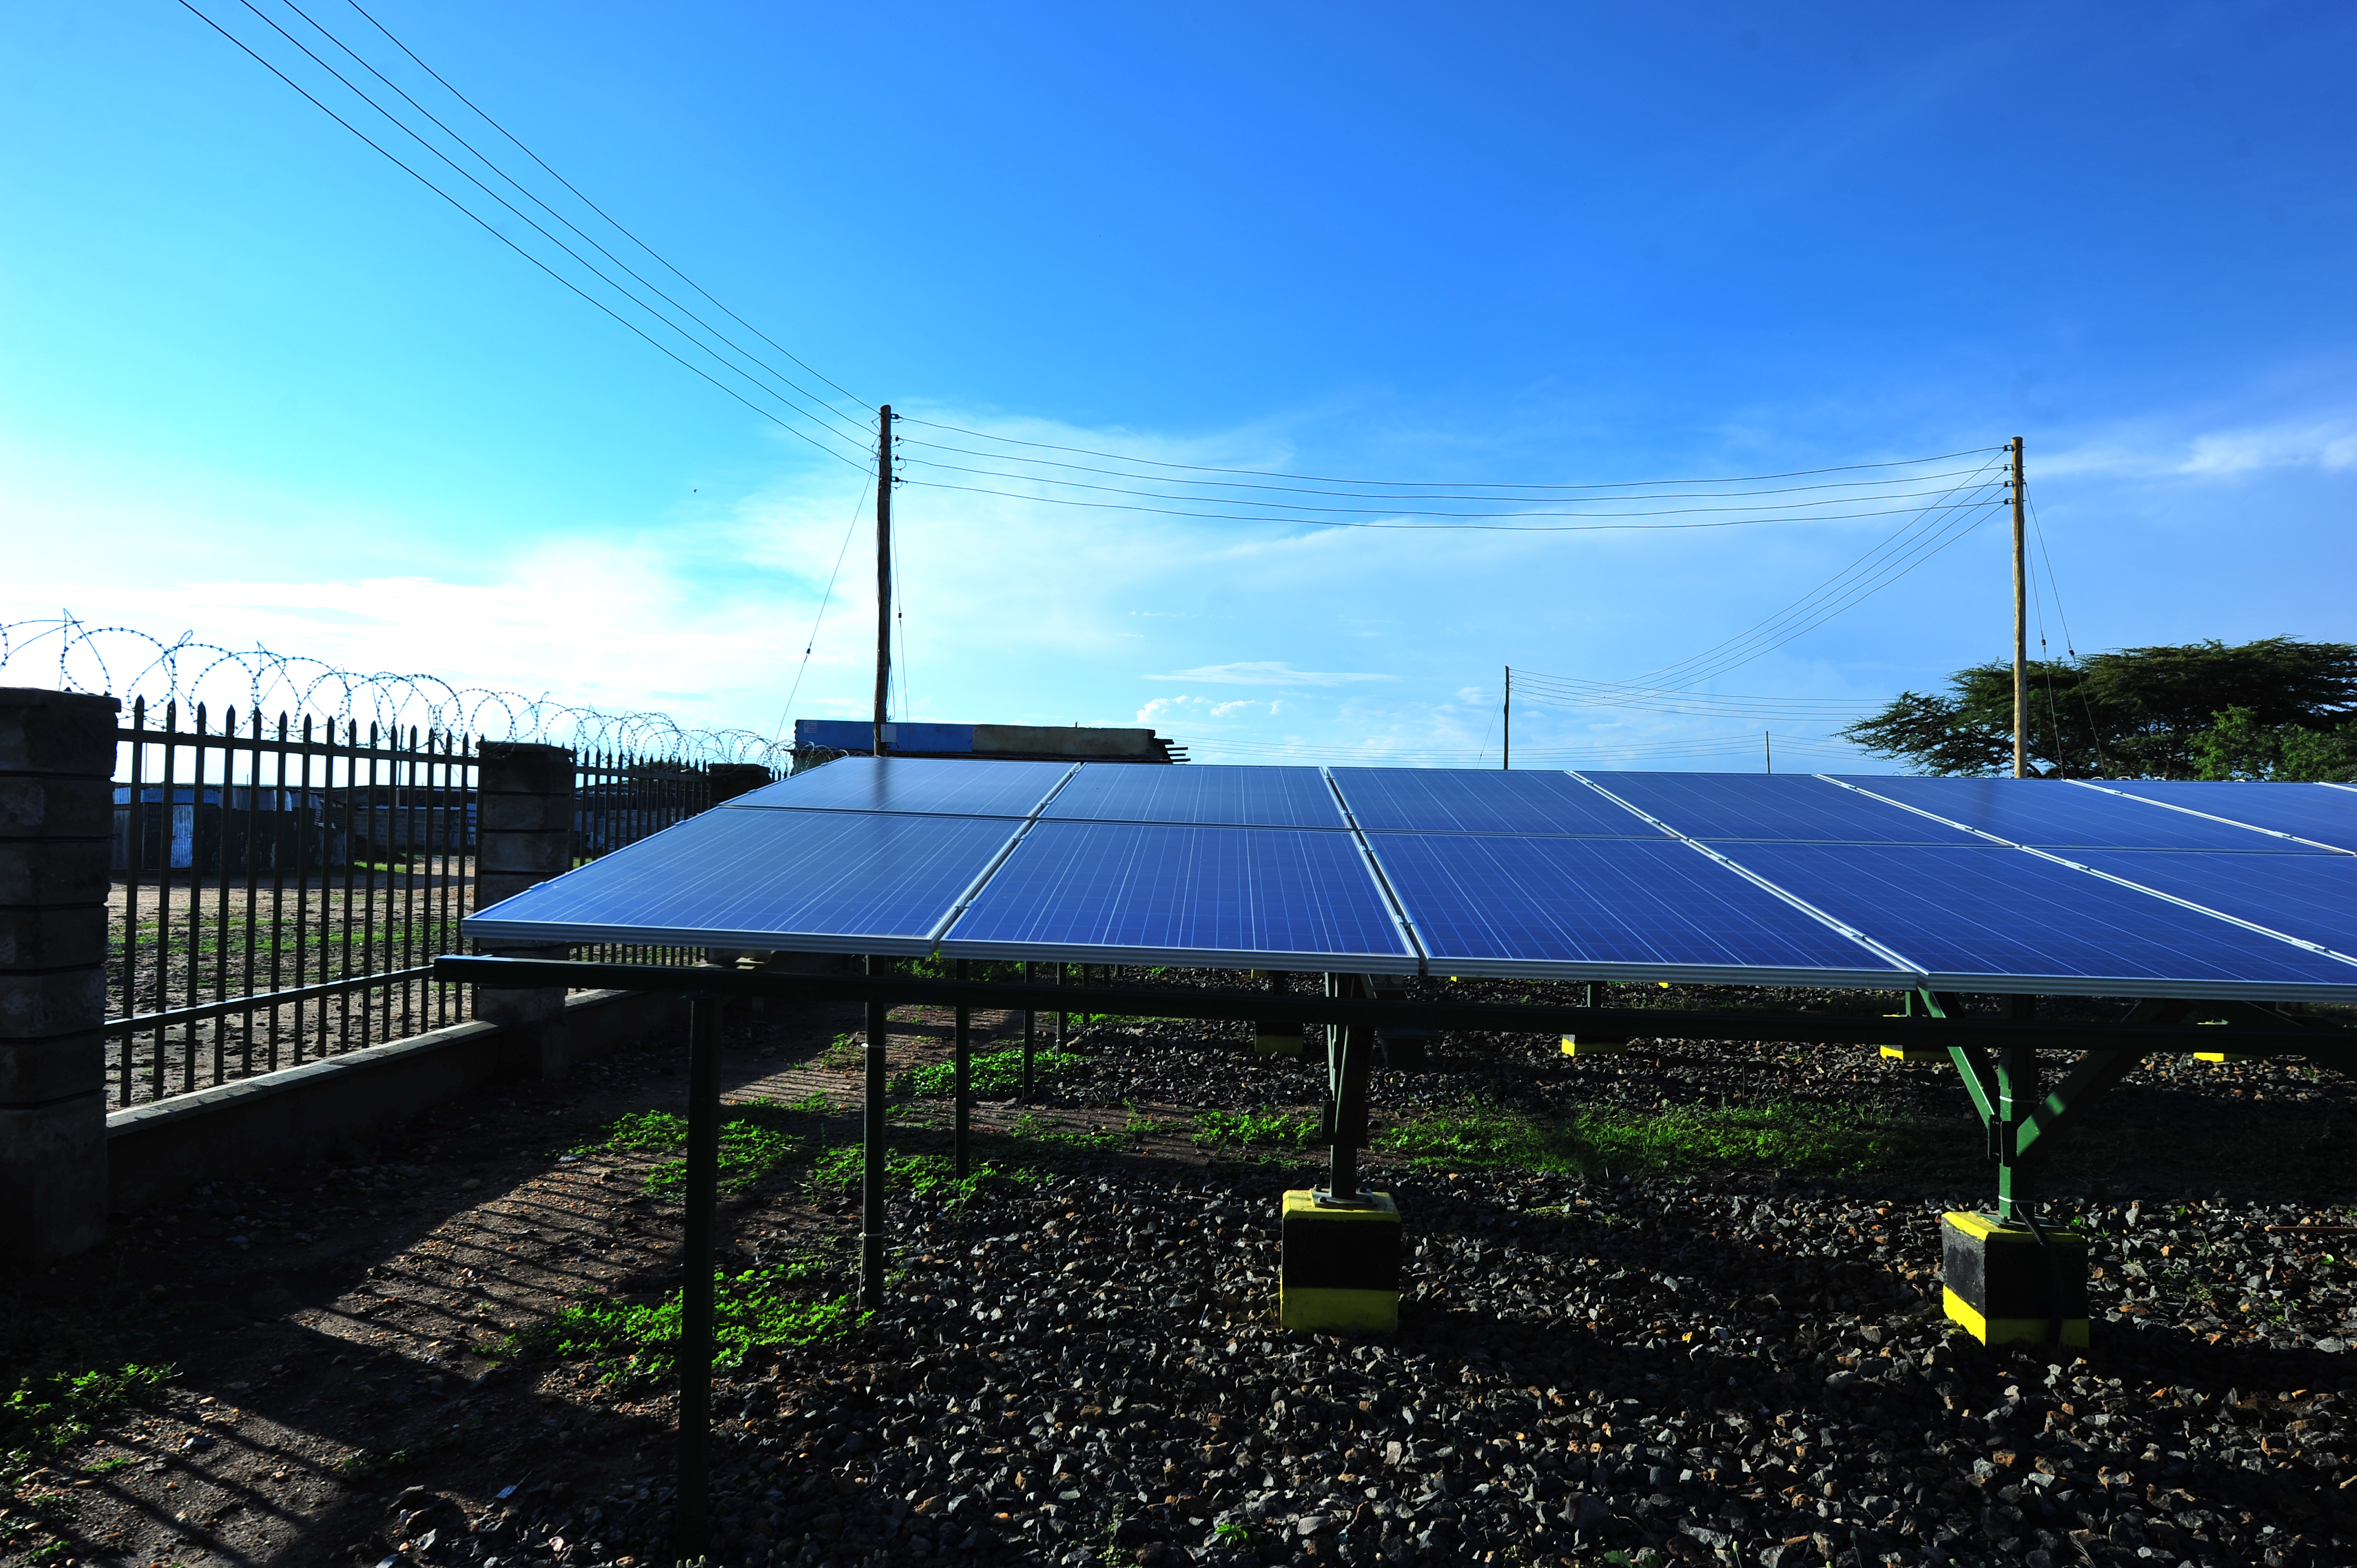 A view of solar panels and distribution lines at Talek Solar Power plant in Talek, Narok County. GIZ and other partners constructed  the power plant which will connect residents of Talek town to power for domestic and commercial use.